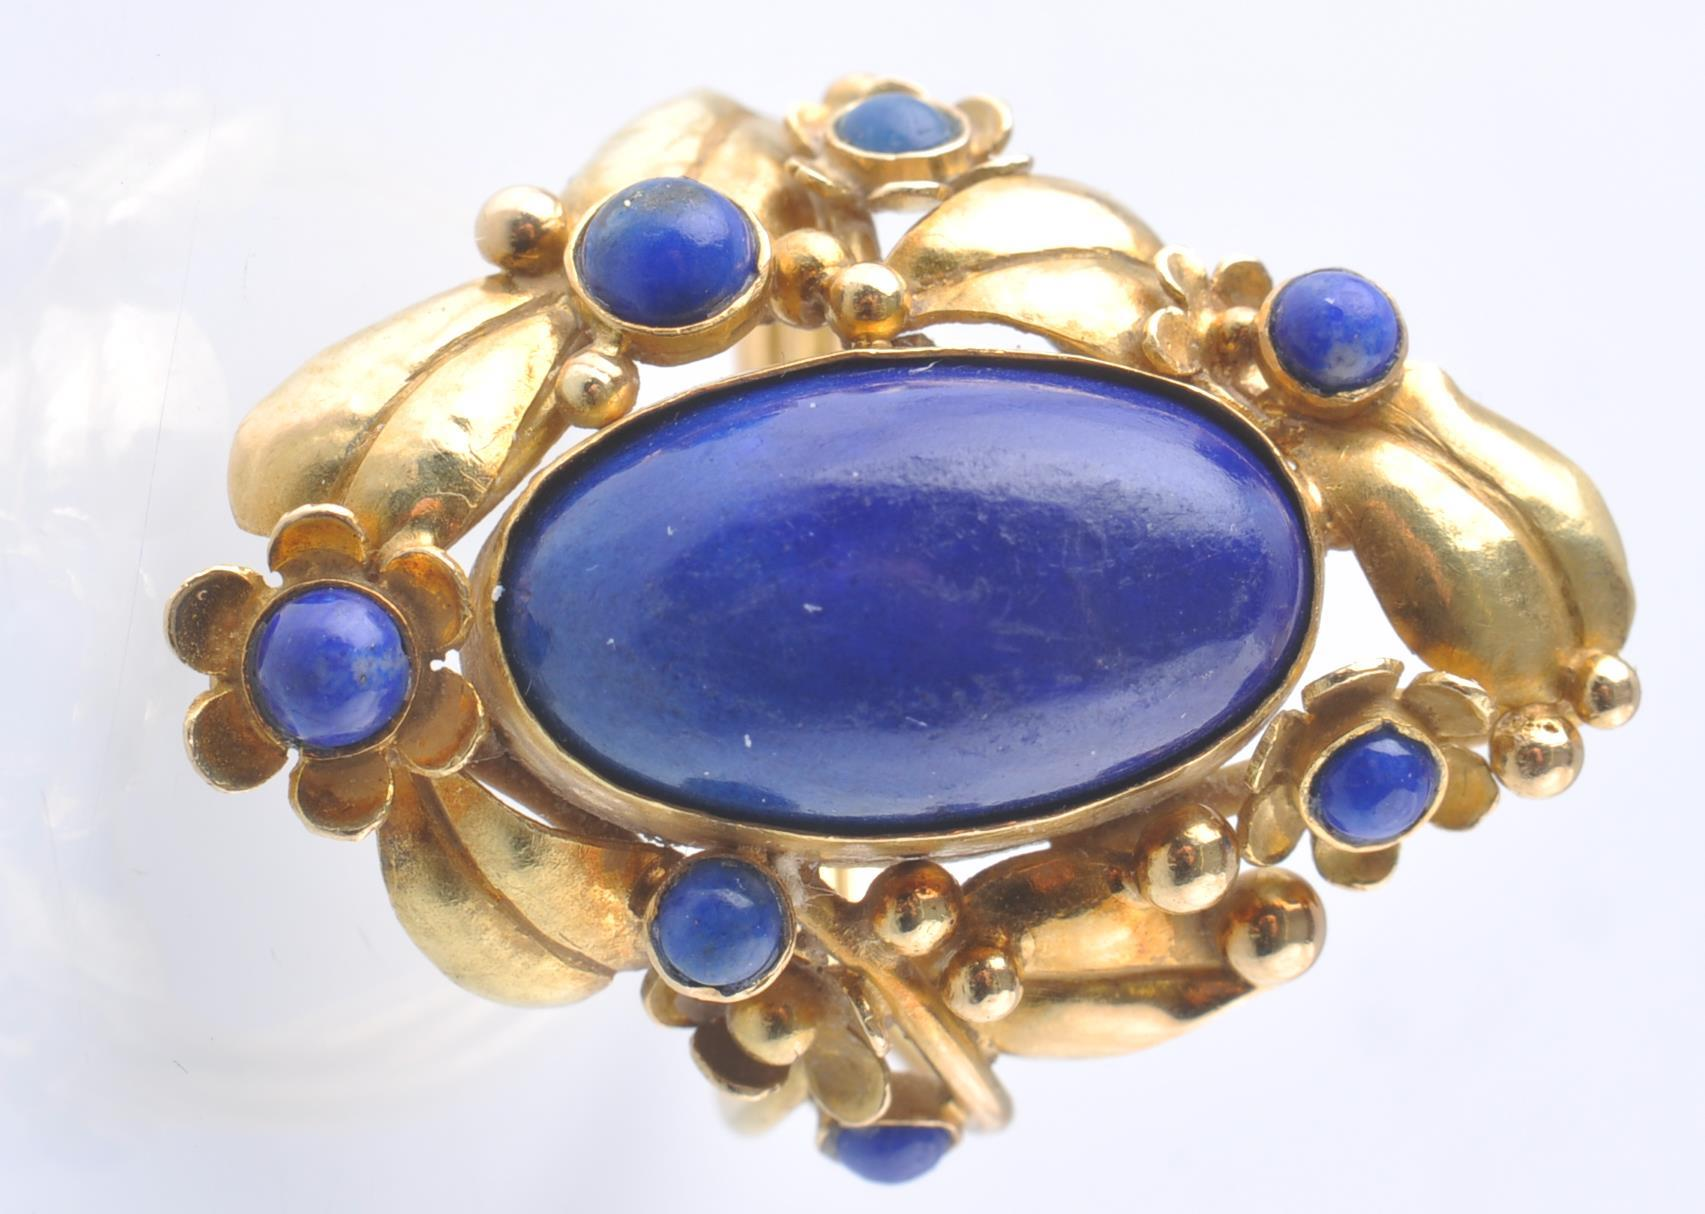 Lot 89 - A HALLMARKED 1970'S 18CT GOLD AND LAPIS LAZULI RIN